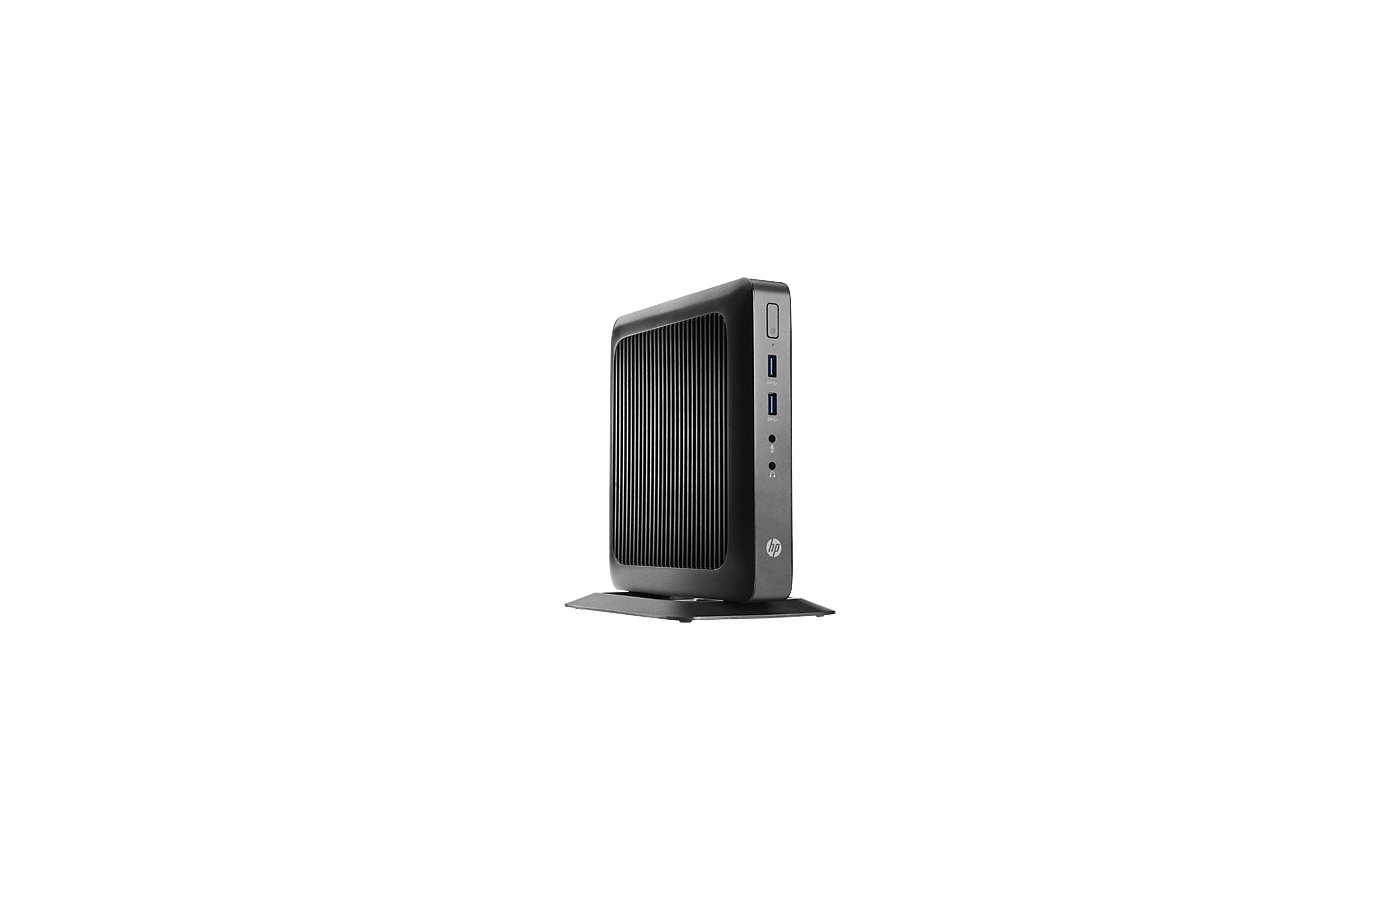 Системный блок HP T520 AMD GX-212JC /G9F04AA/